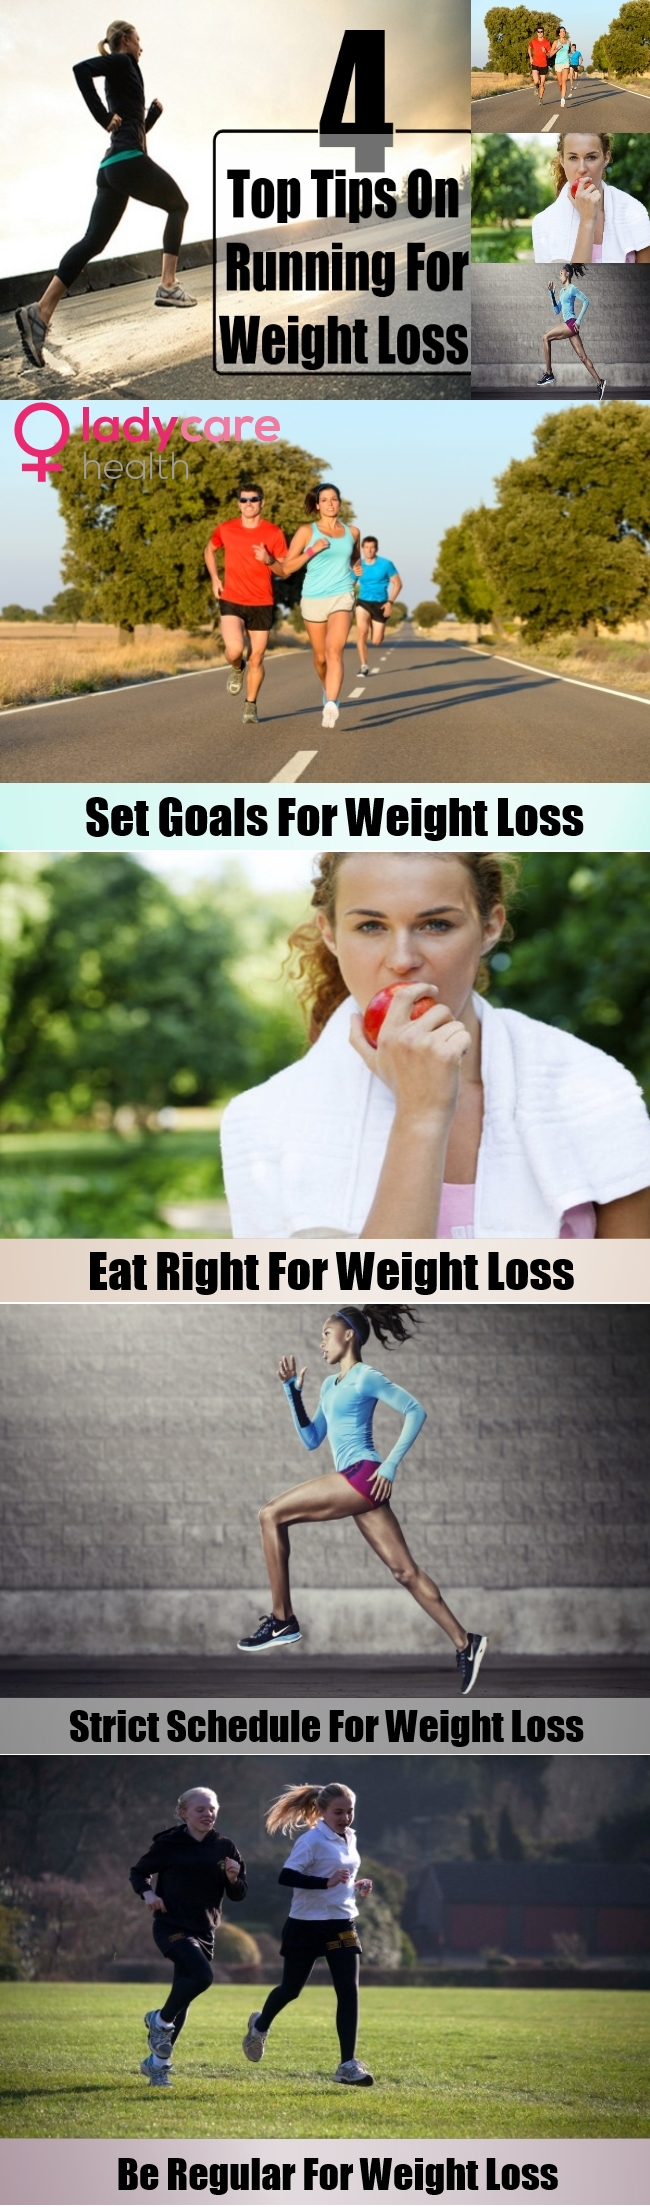 4 Top Tips On Running For Weight Loss